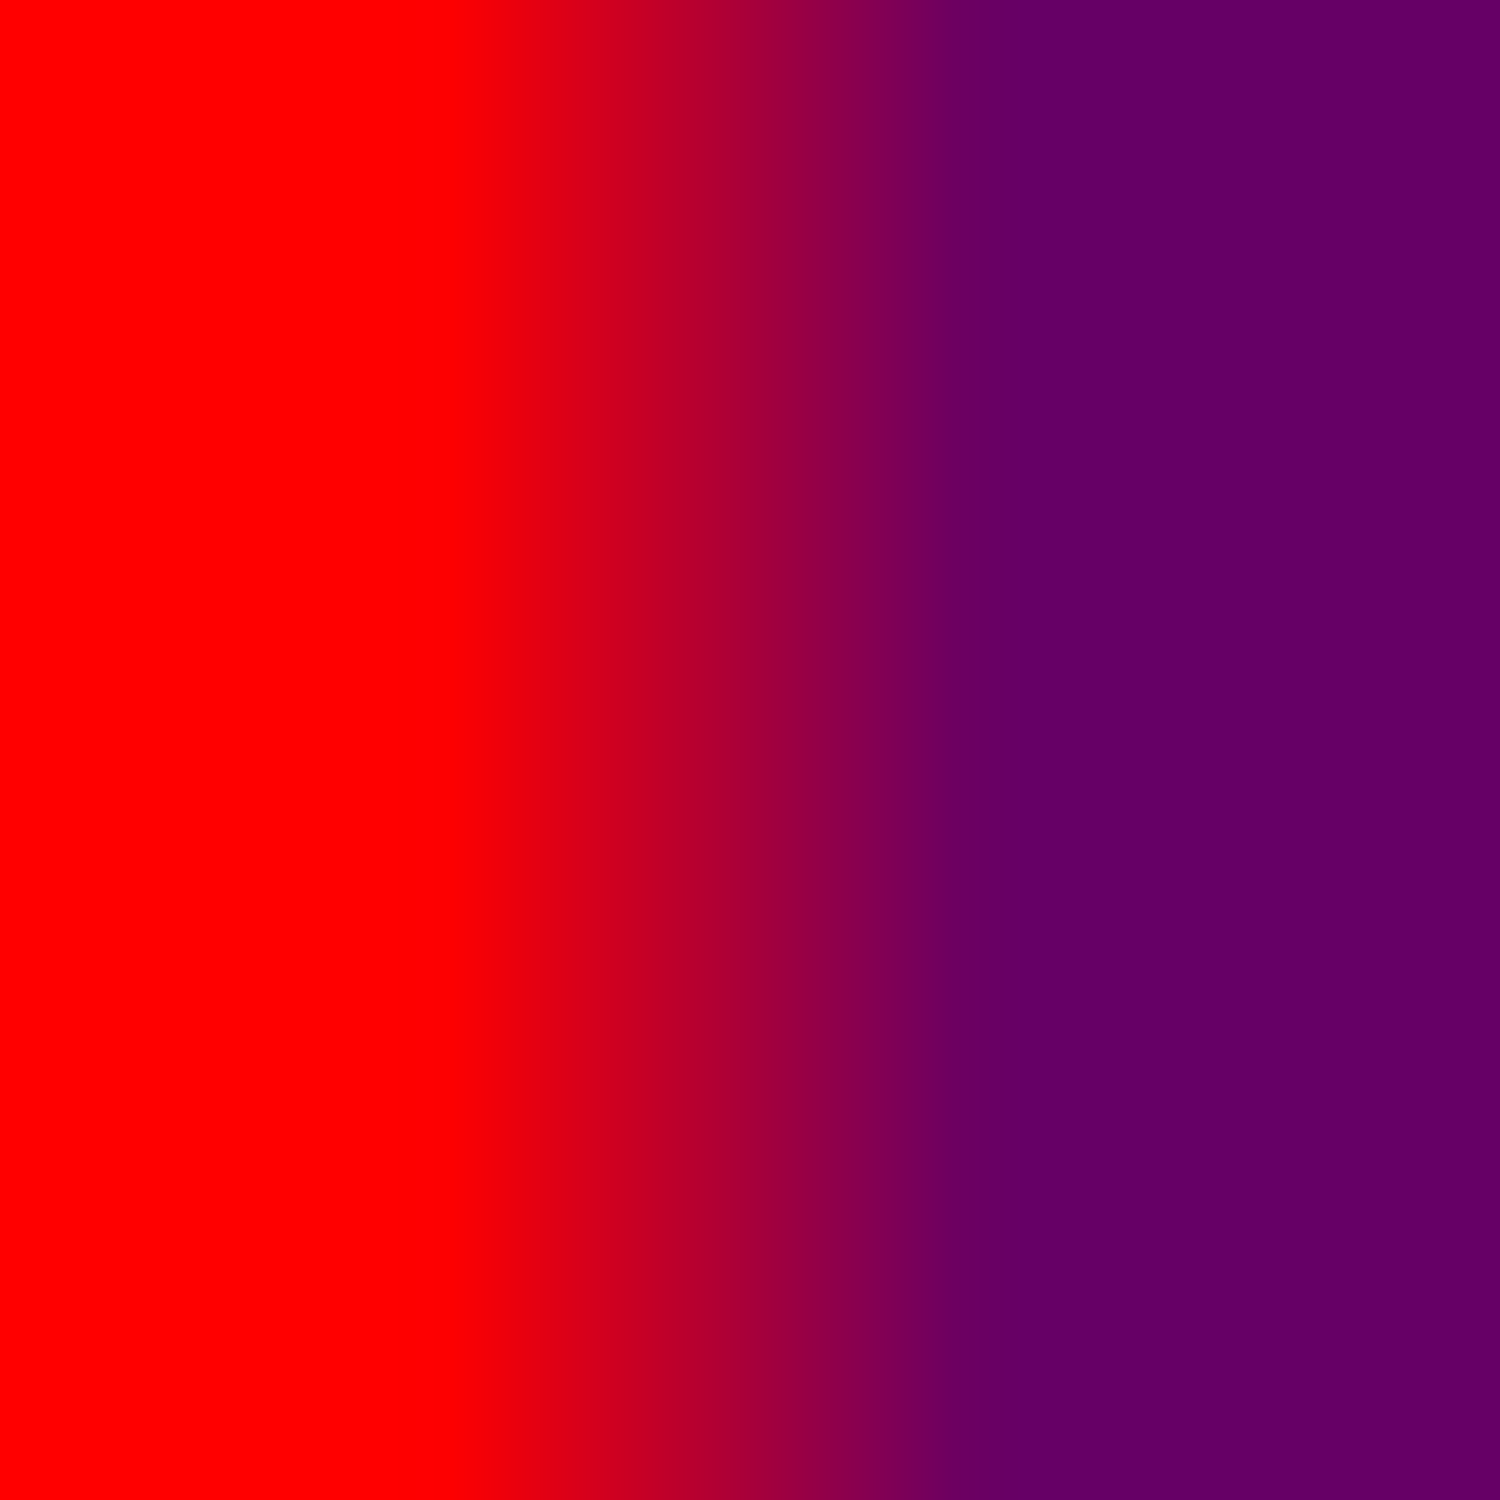 Color Violet Red Www Pixshark Com Images Galleries